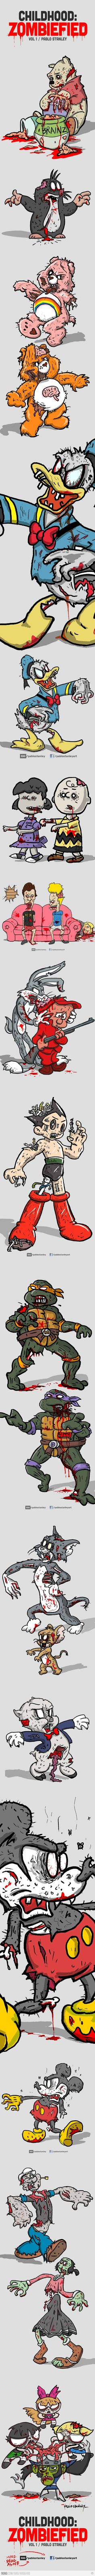 Childhood ruined... espically PPG's and TMNT!